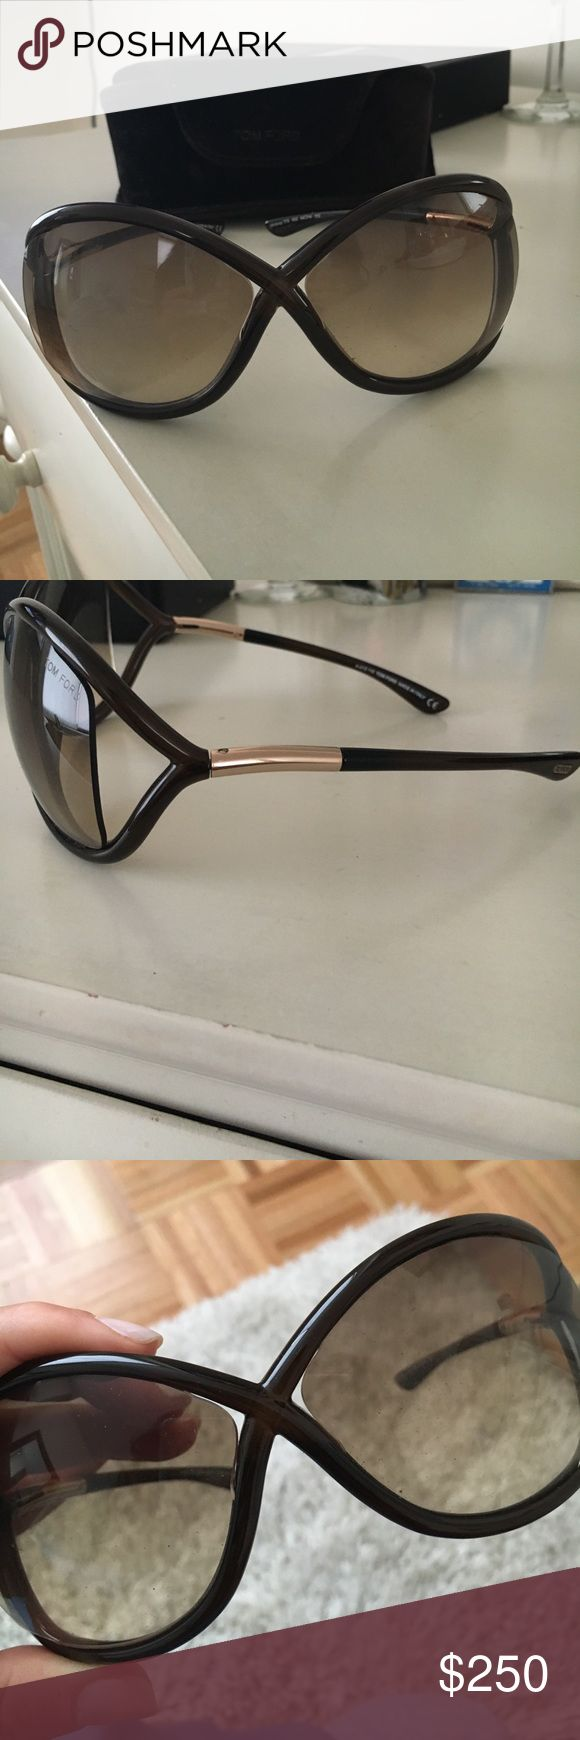 Tom ford sunglasses Tom ford authentic oversized round sunglasses Tom Ford Accessories Sunglasses